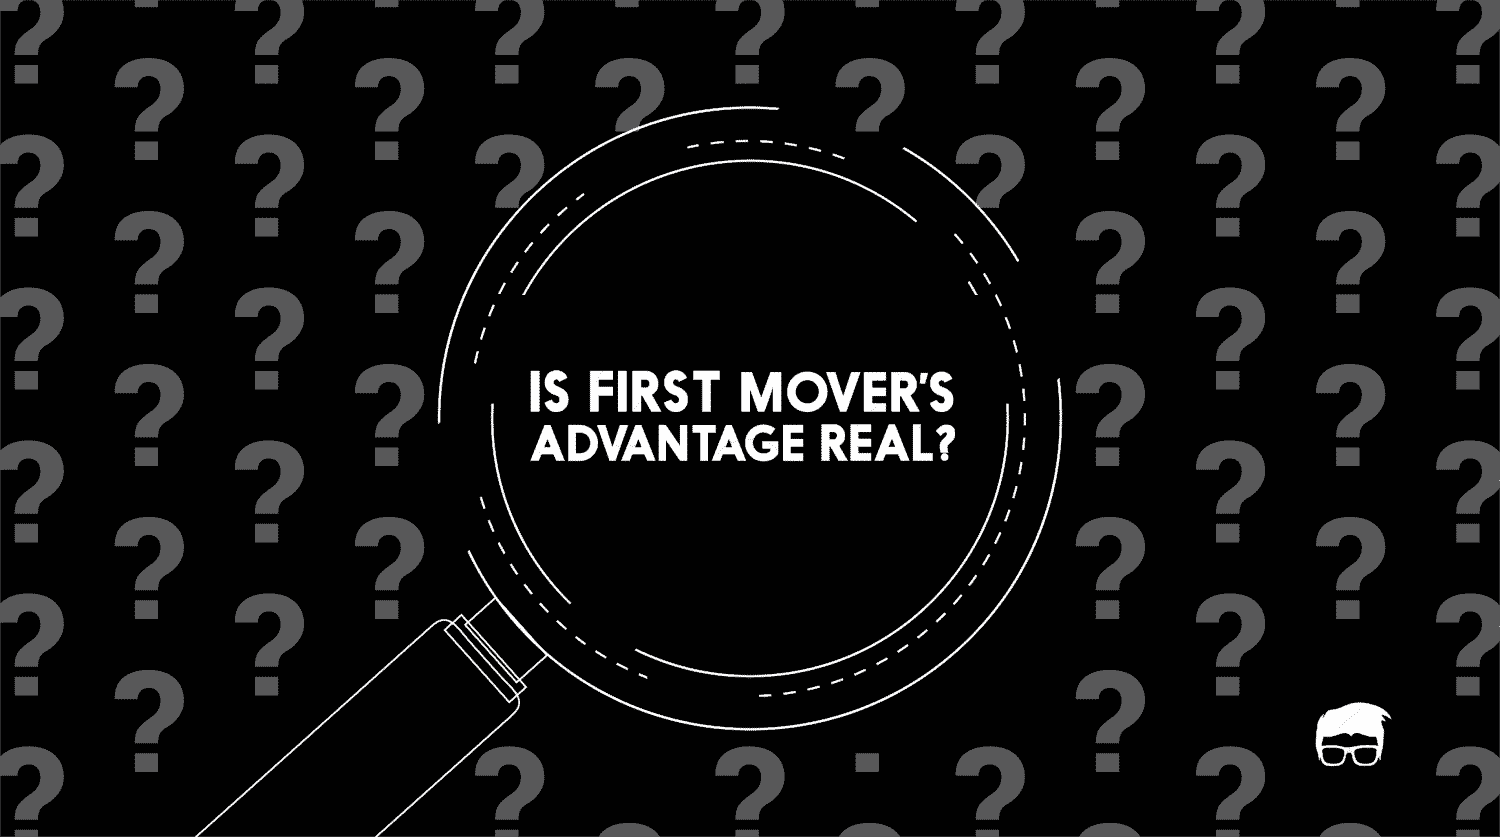 Is First Mover's Advantage Real